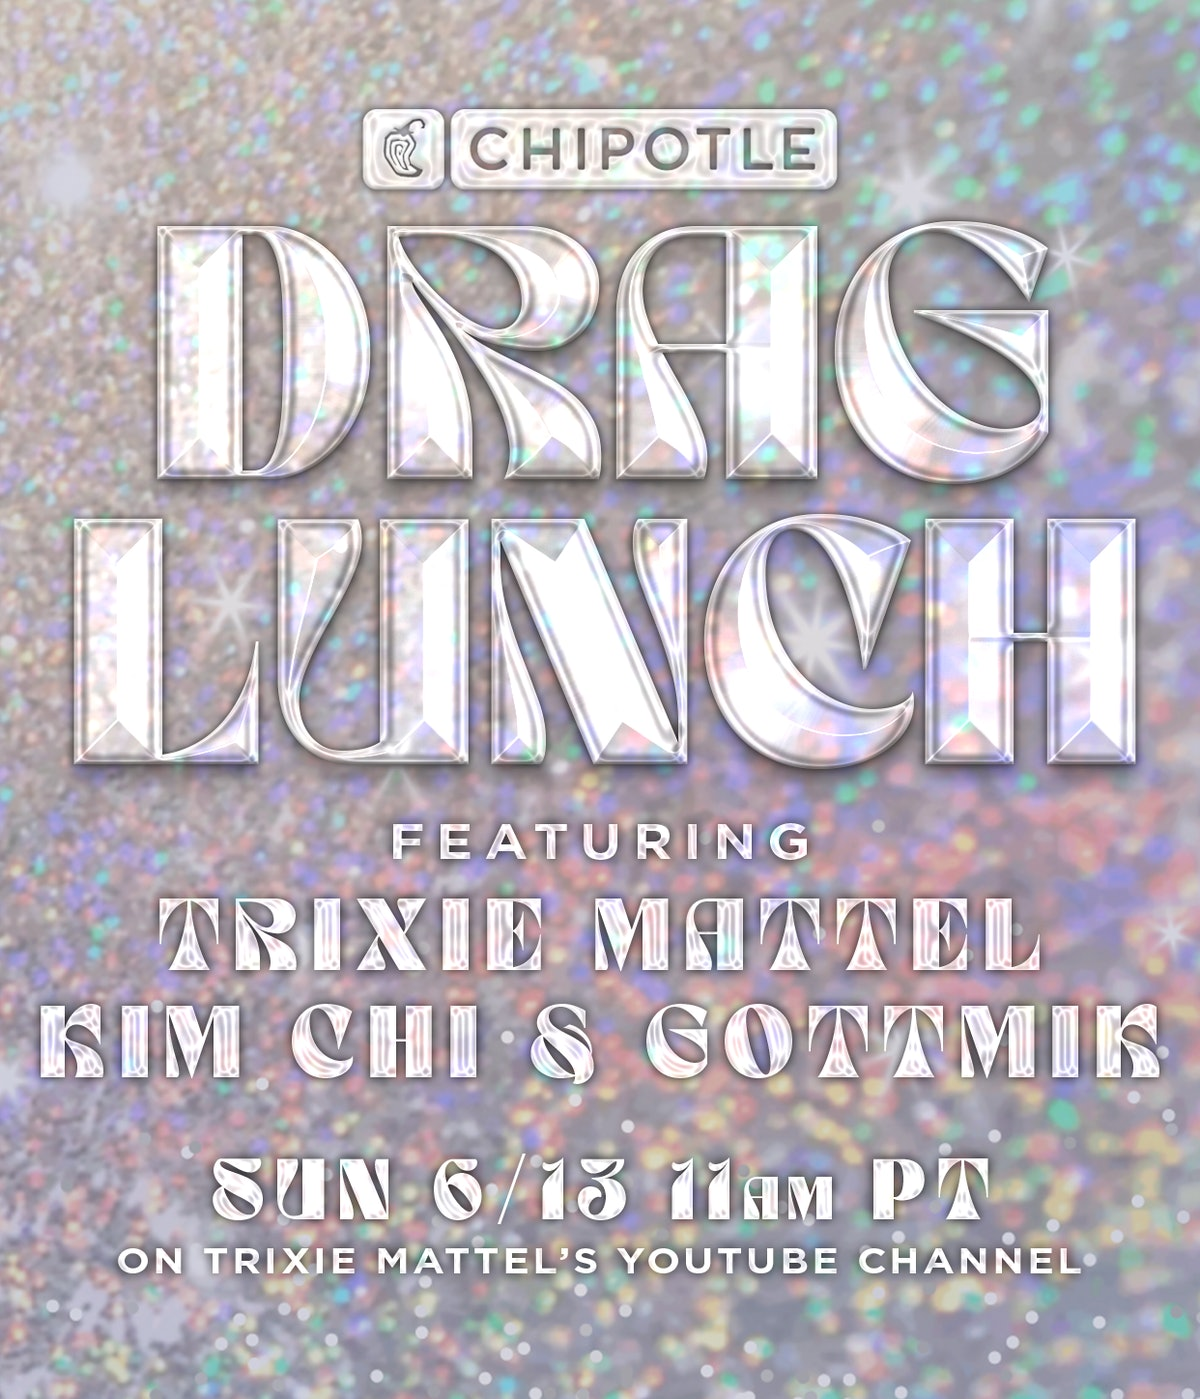 You can attend Chipotle's June 13 Drag Brunch with Trixie Mattel and score a free entrée.